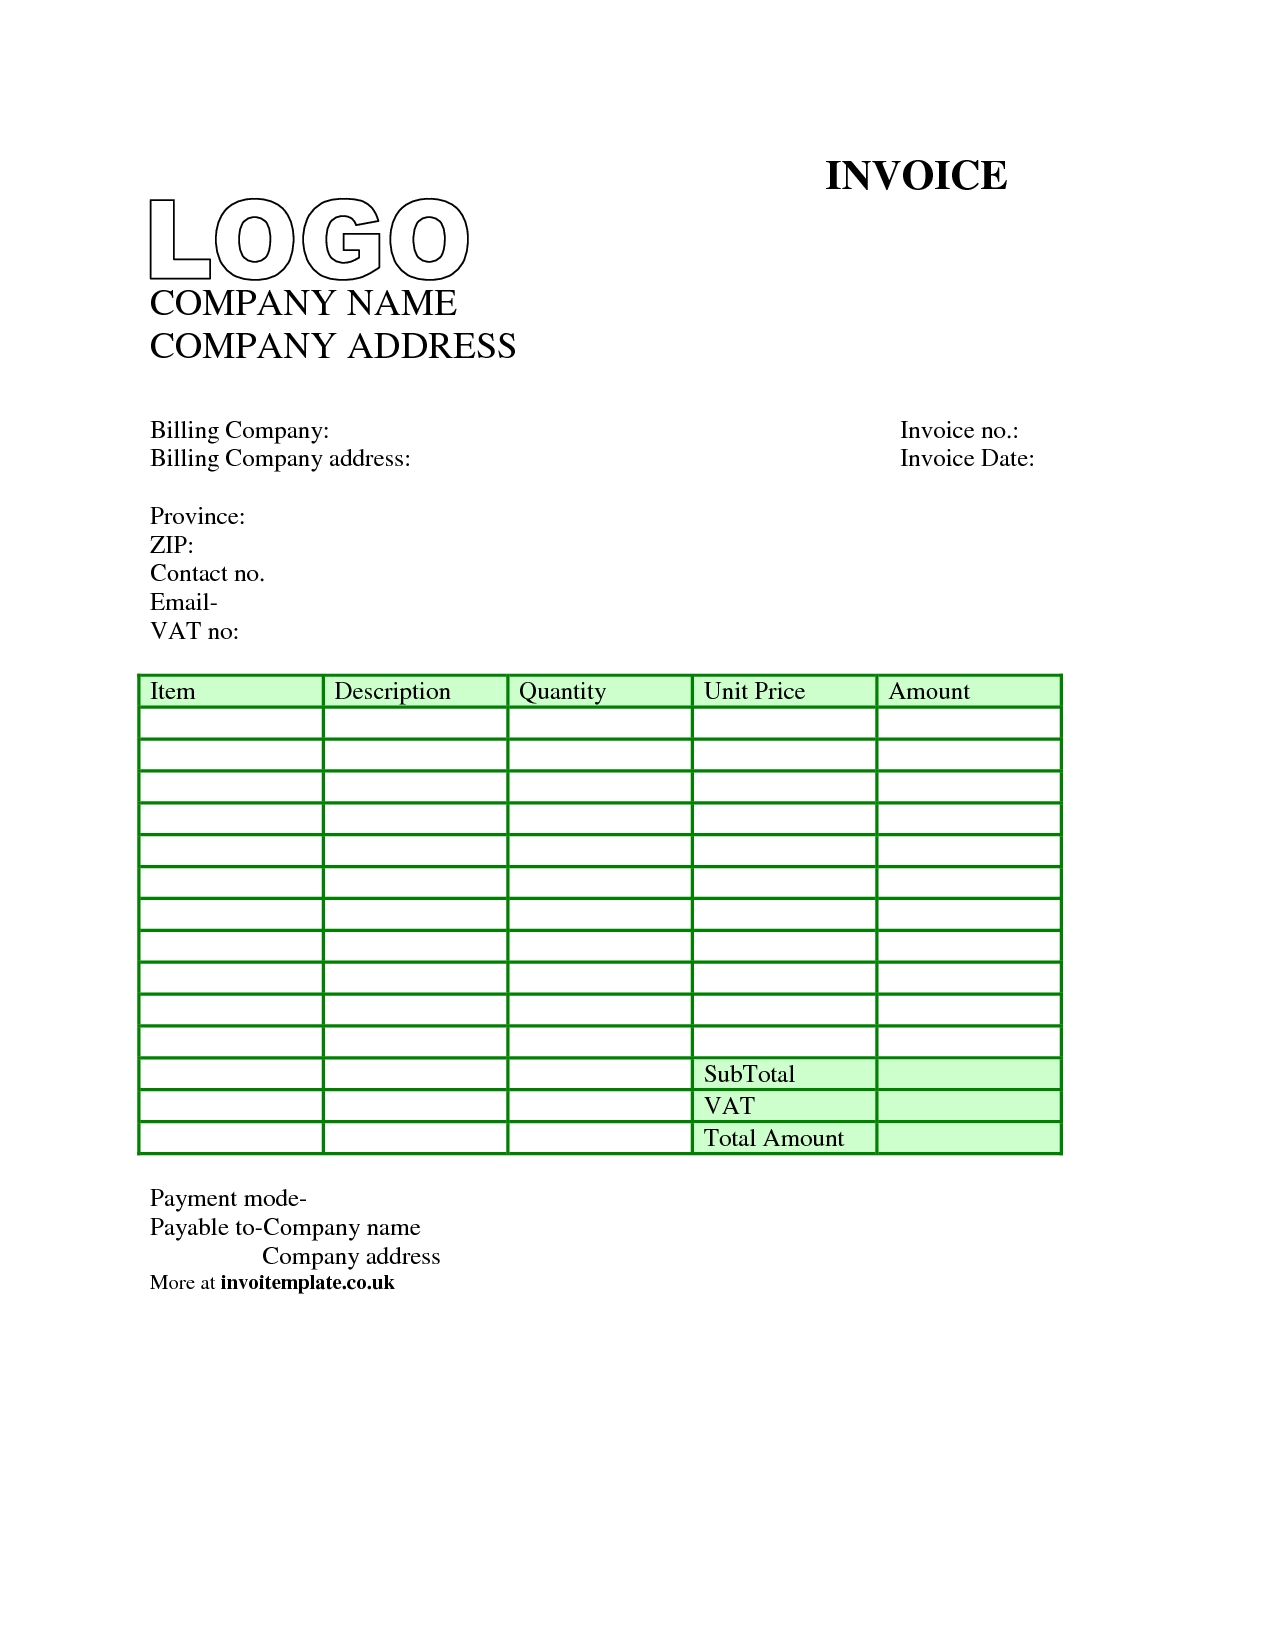 invoice template uk free excel invoice template uk invoice uk vat invoice template